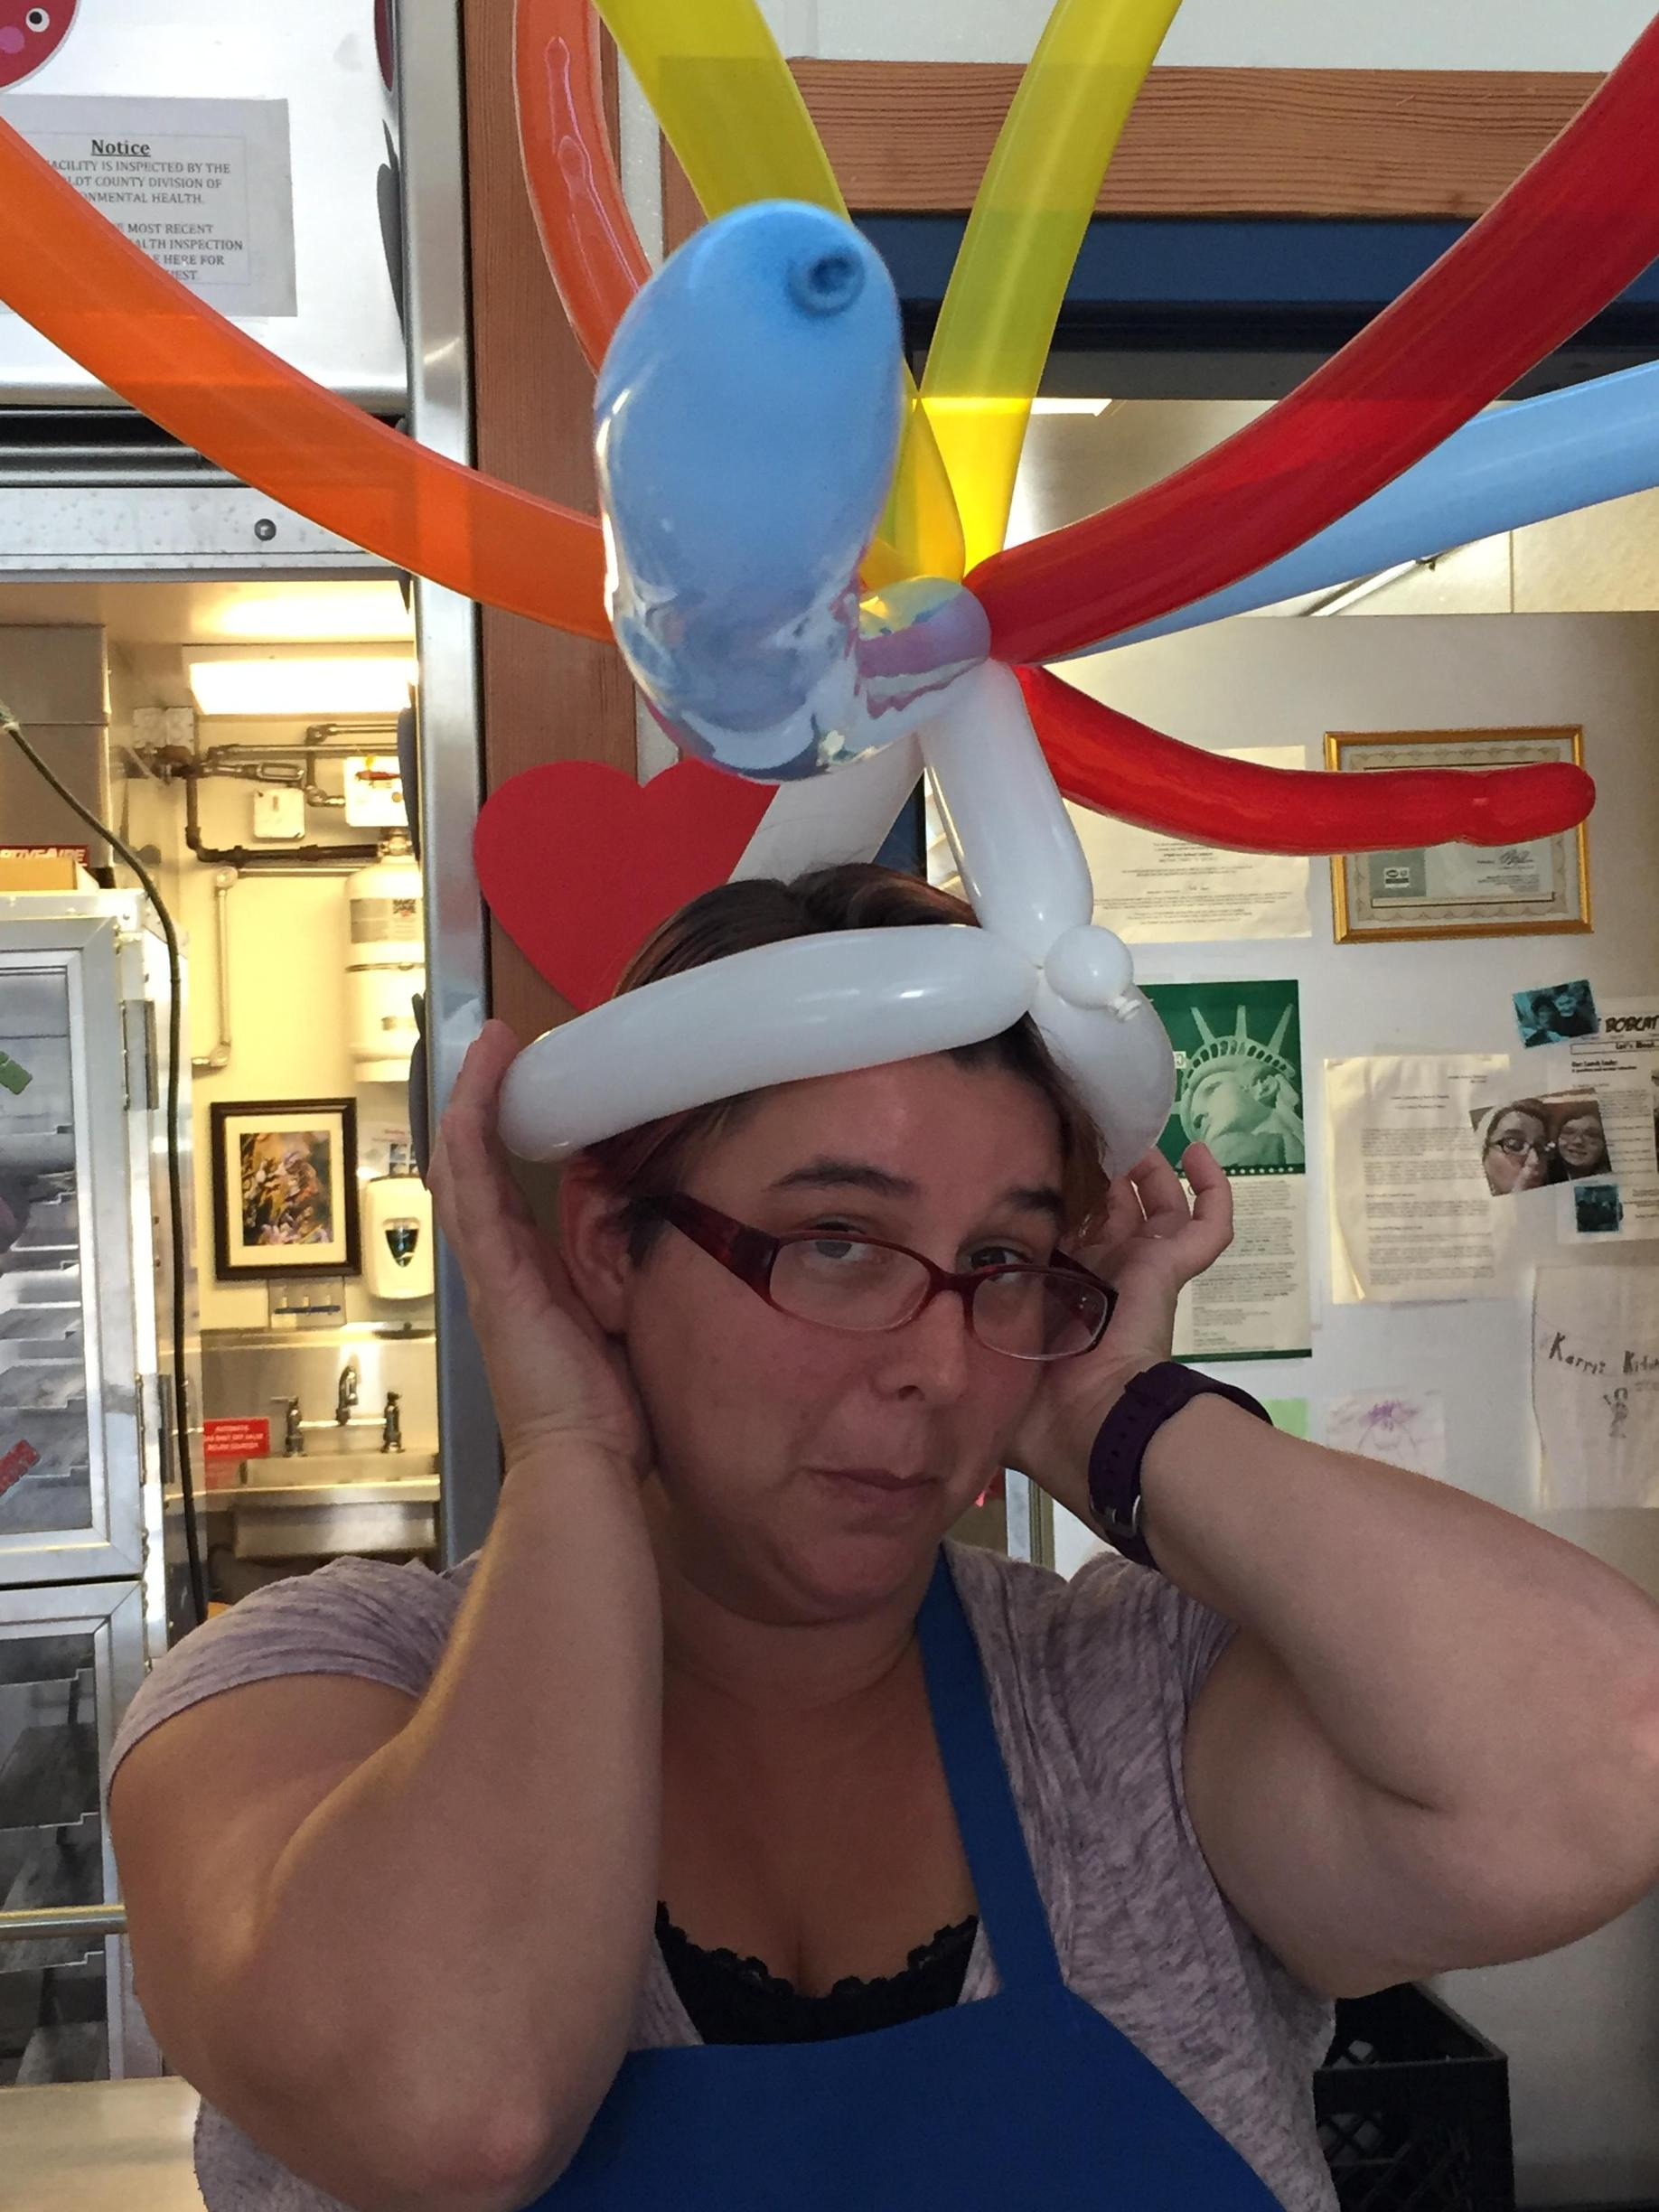 teacher wearing hat made from balloons